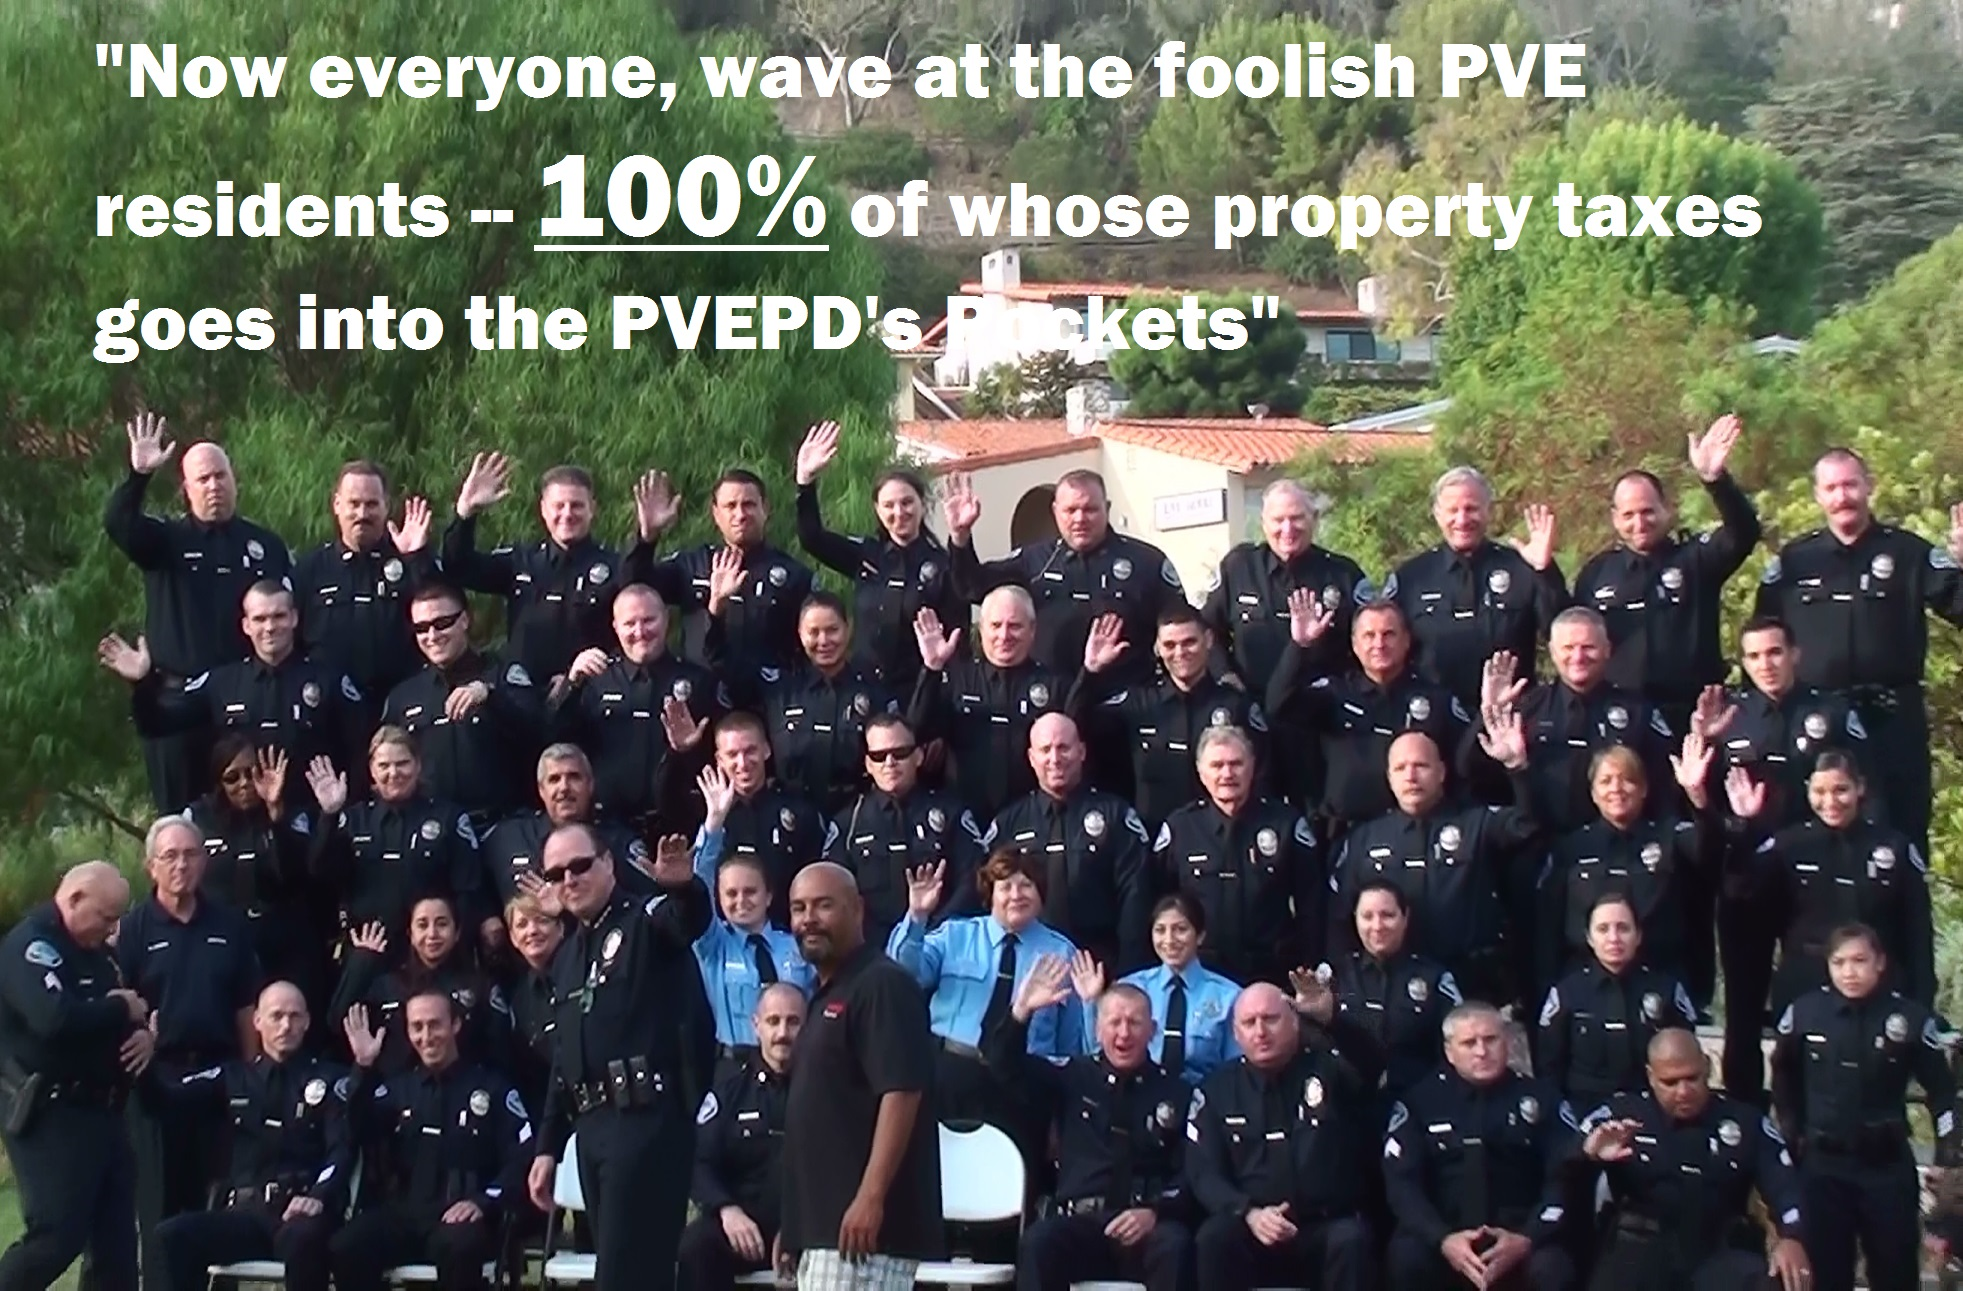 PVEPD Photo Day Entire Dept Waving 09-22-2015 - Cropped & Annotated